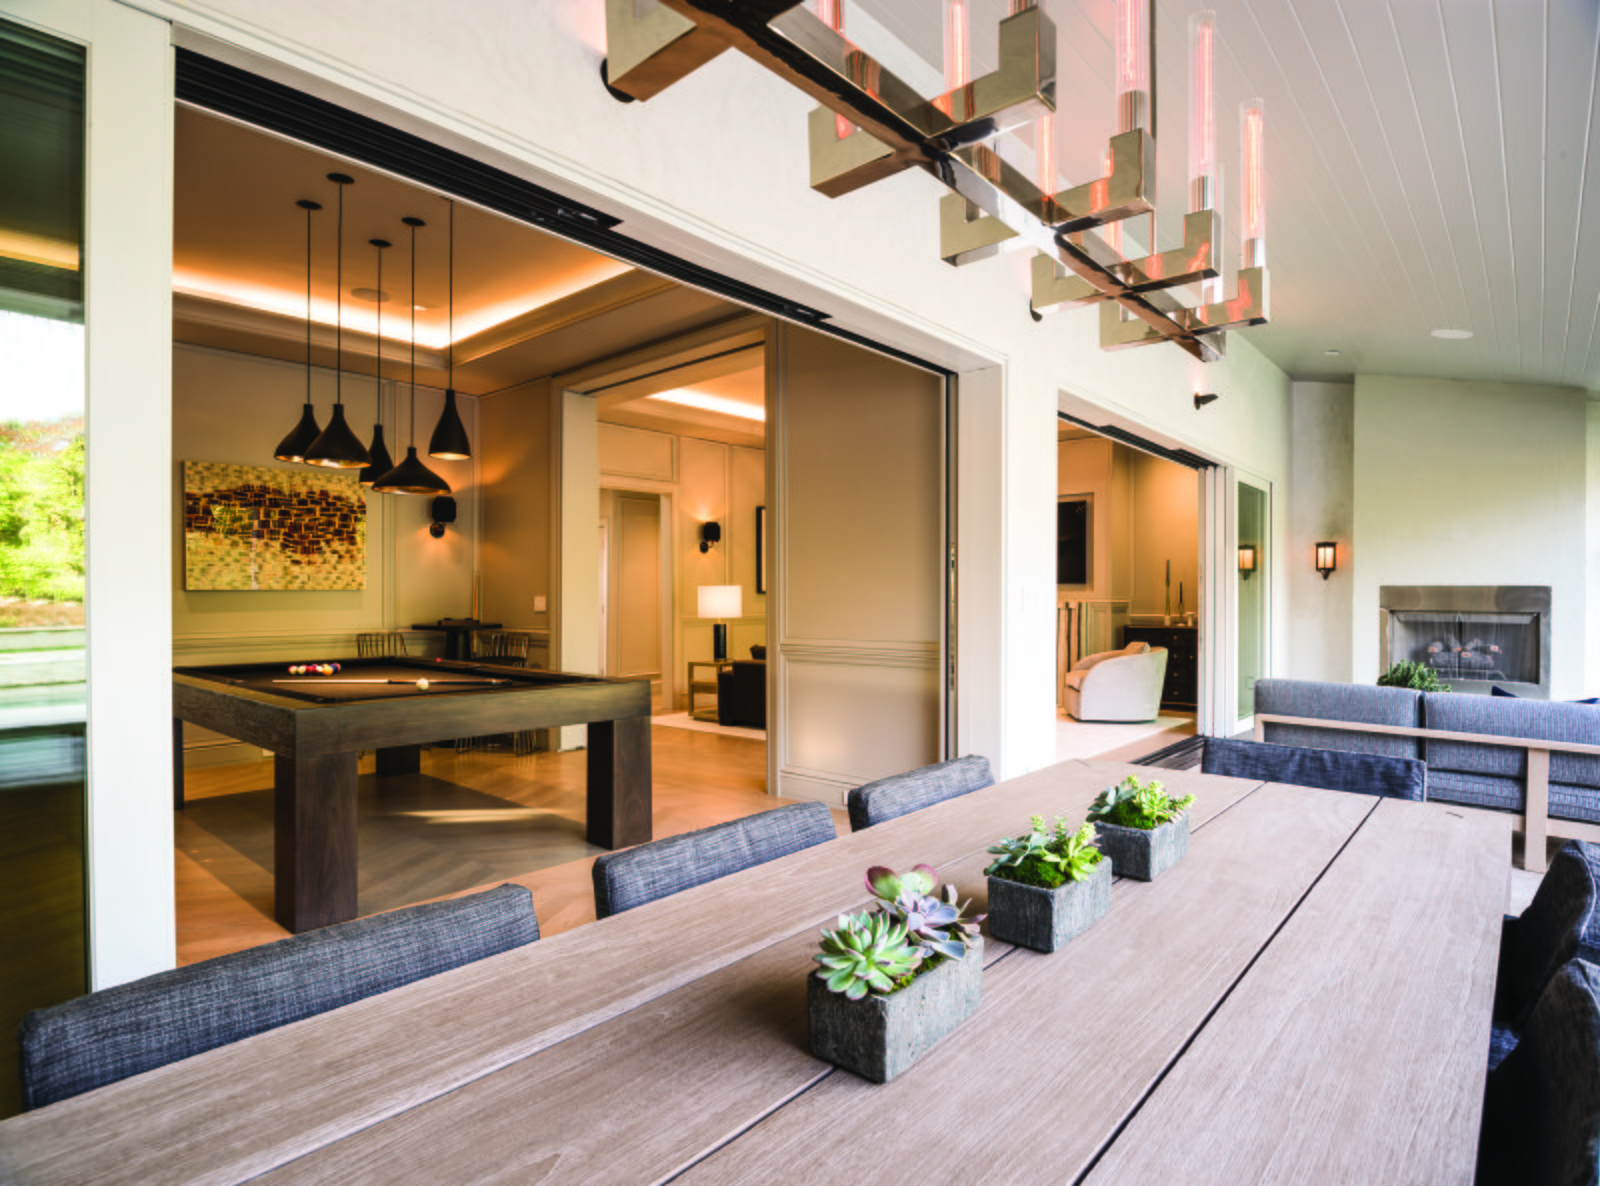 Photo 1 of 4 in A Los Angeles Renovation Opens Up to Coastal Climes